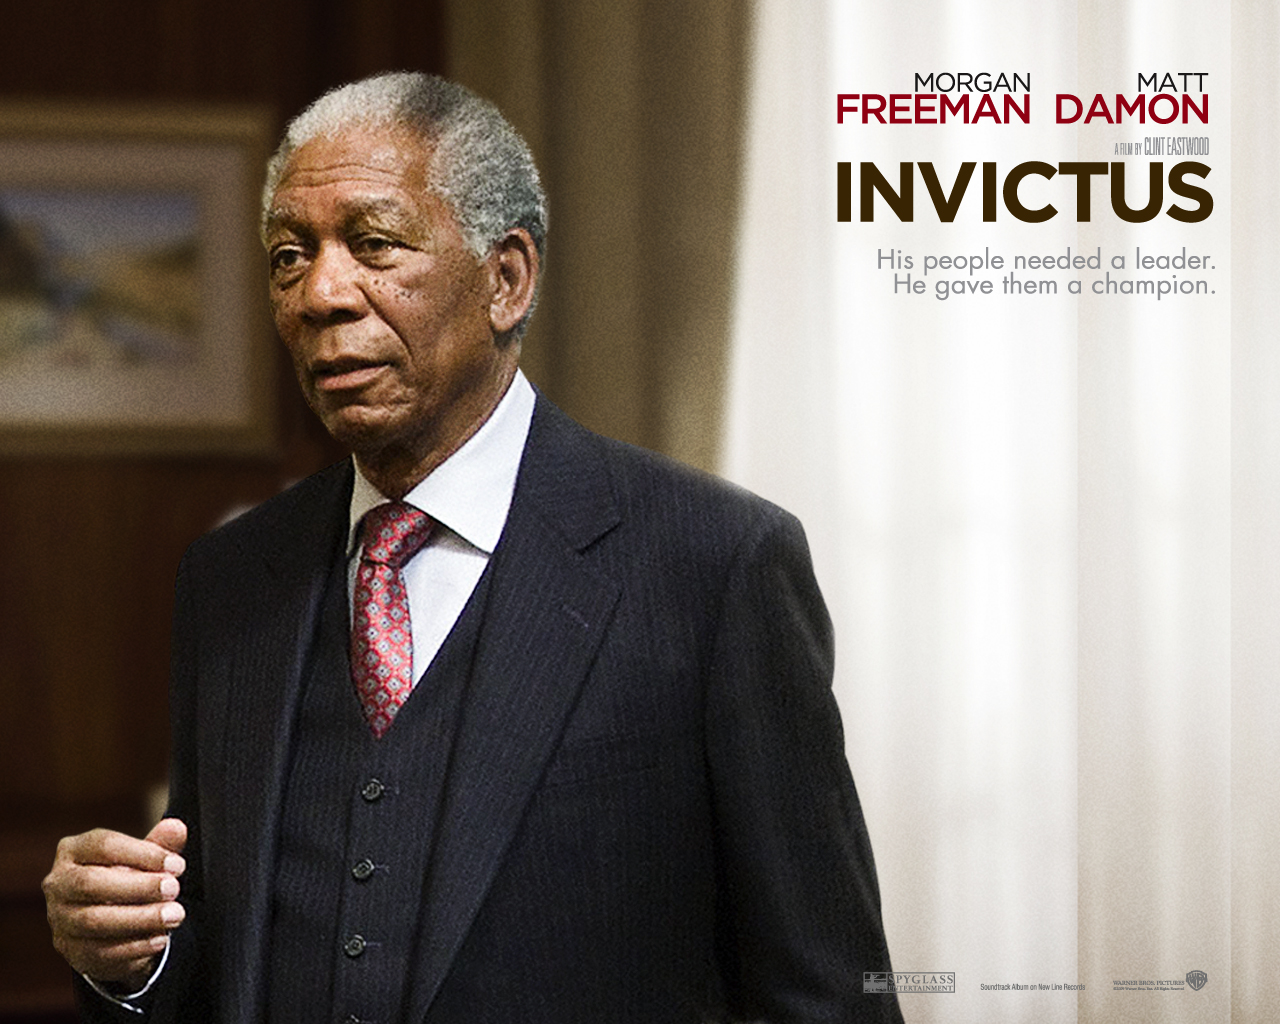 ii comment le film invictus a t il cr l 39 h ro sme de nelson mandela par rapport au livre un. Black Bedroom Furniture Sets. Home Design Ideas